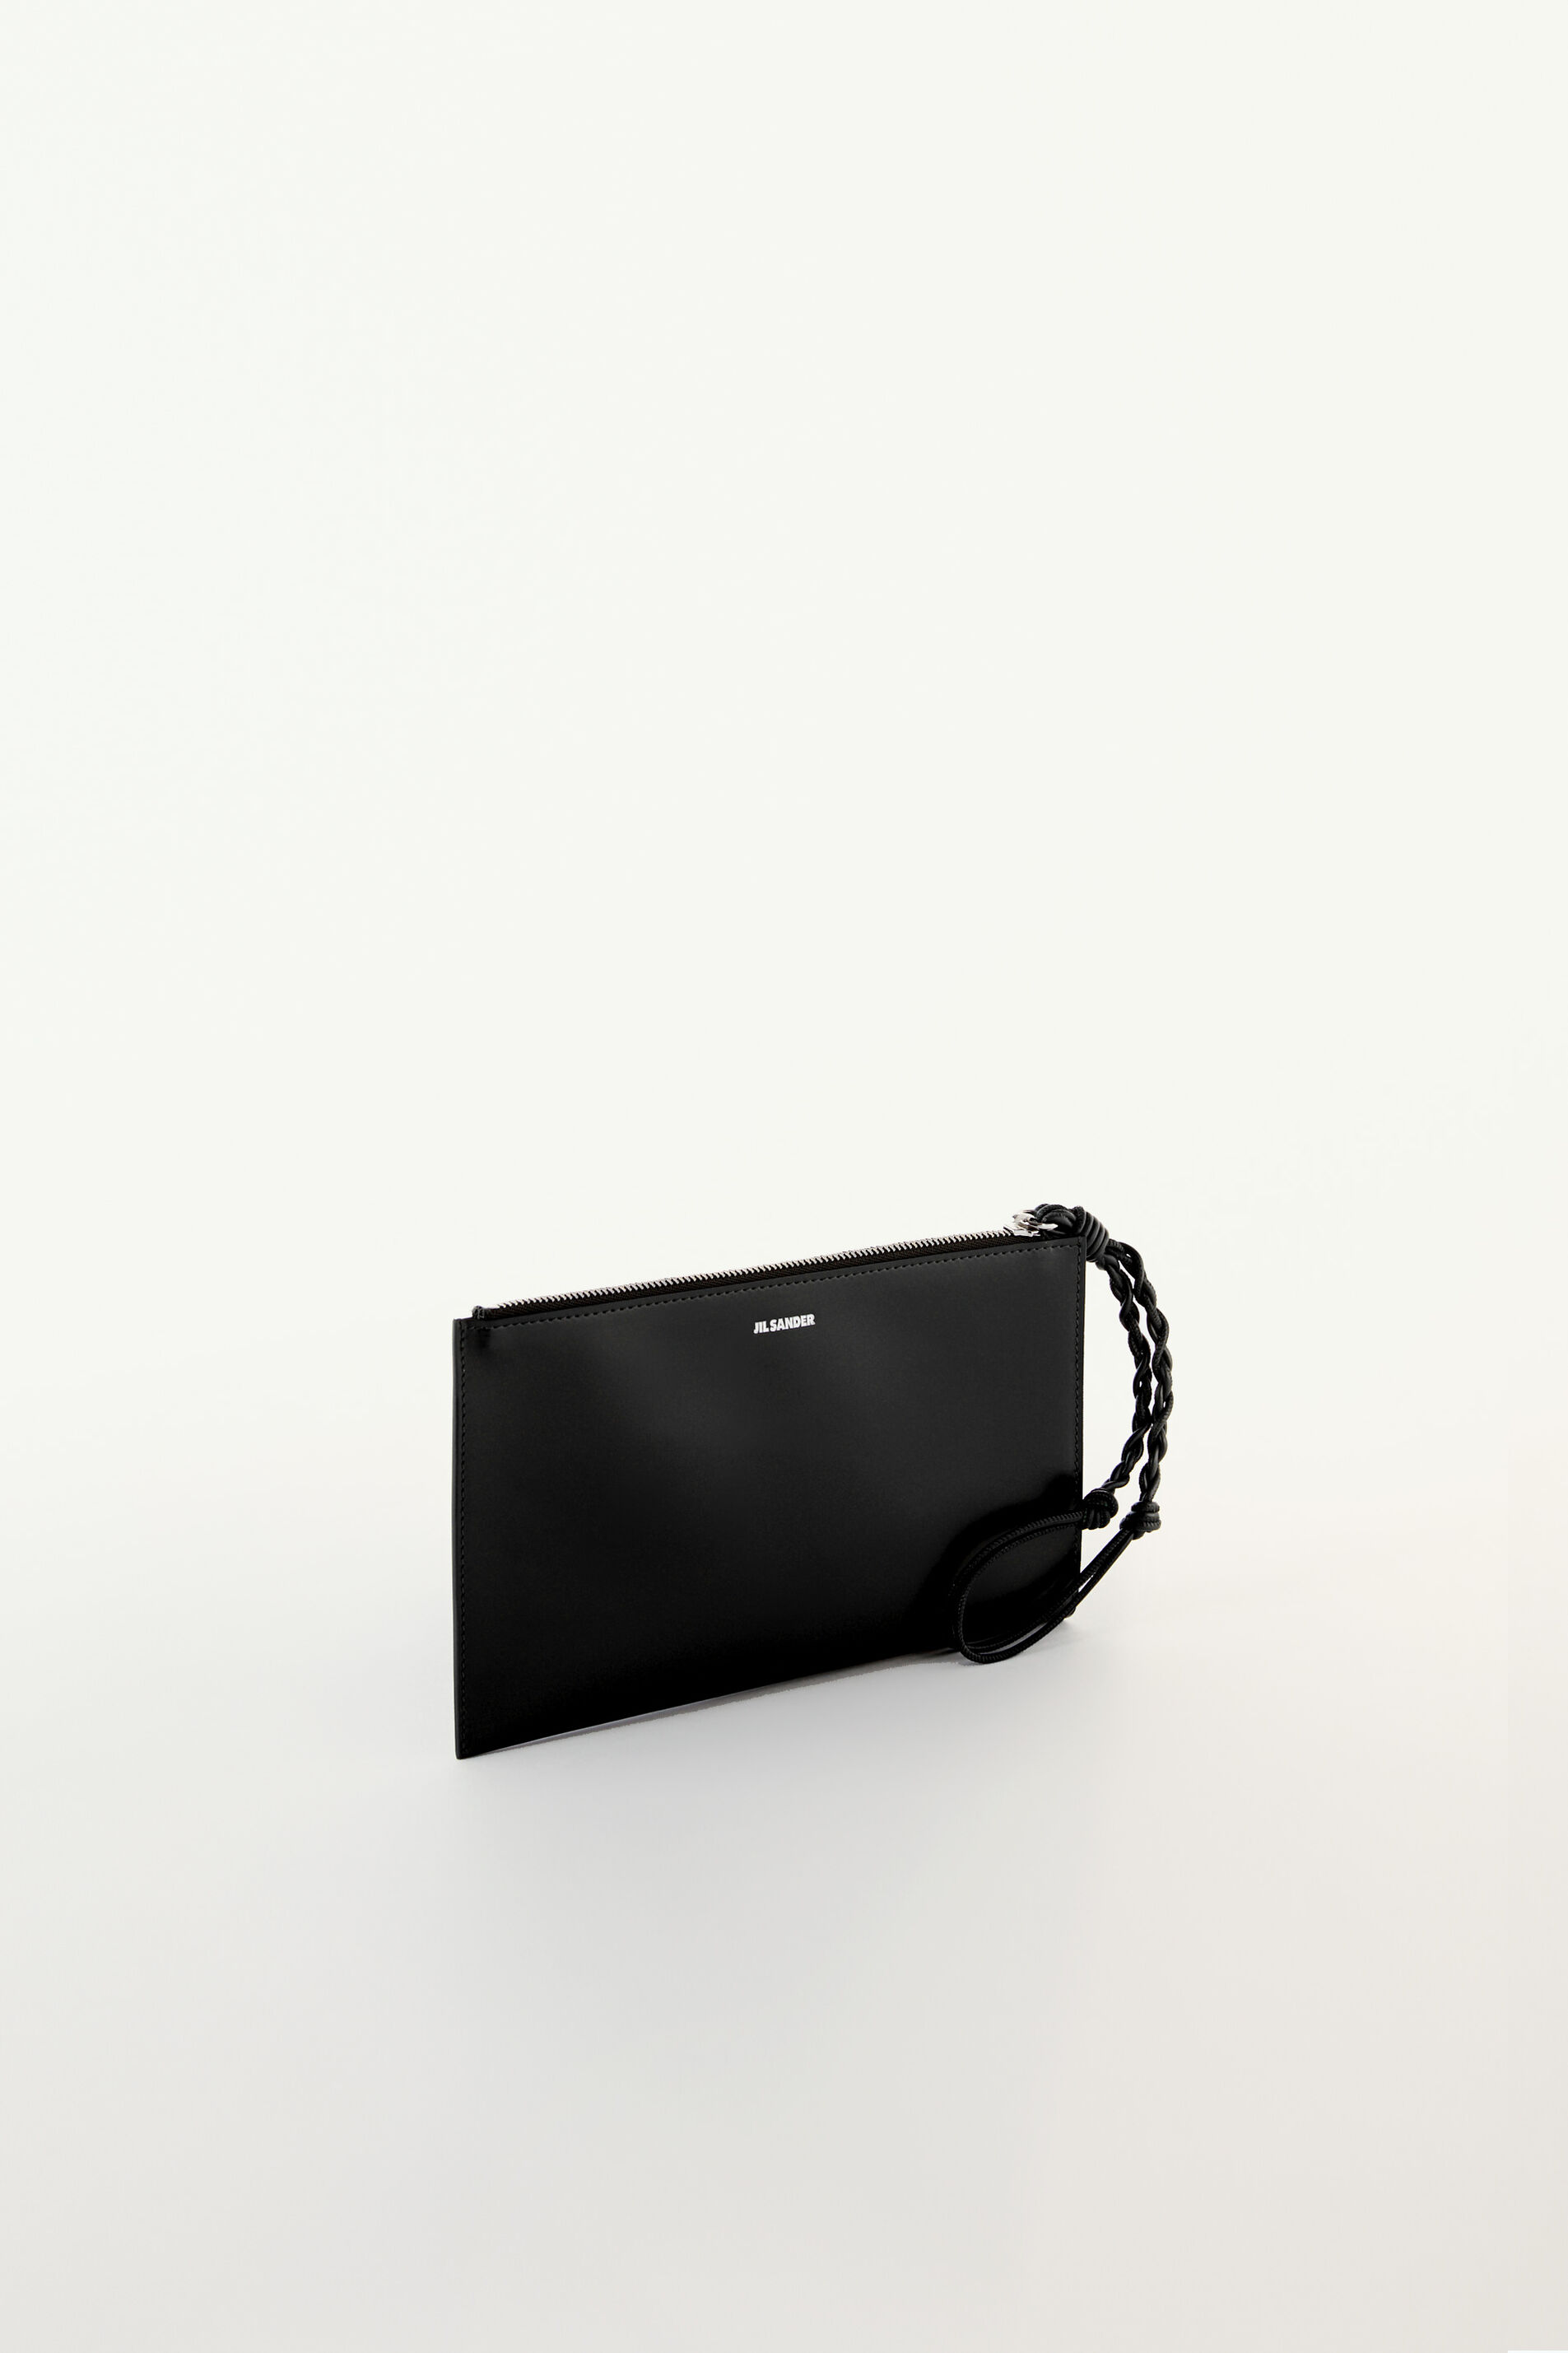 Fold Pocket  Wallet, black, large